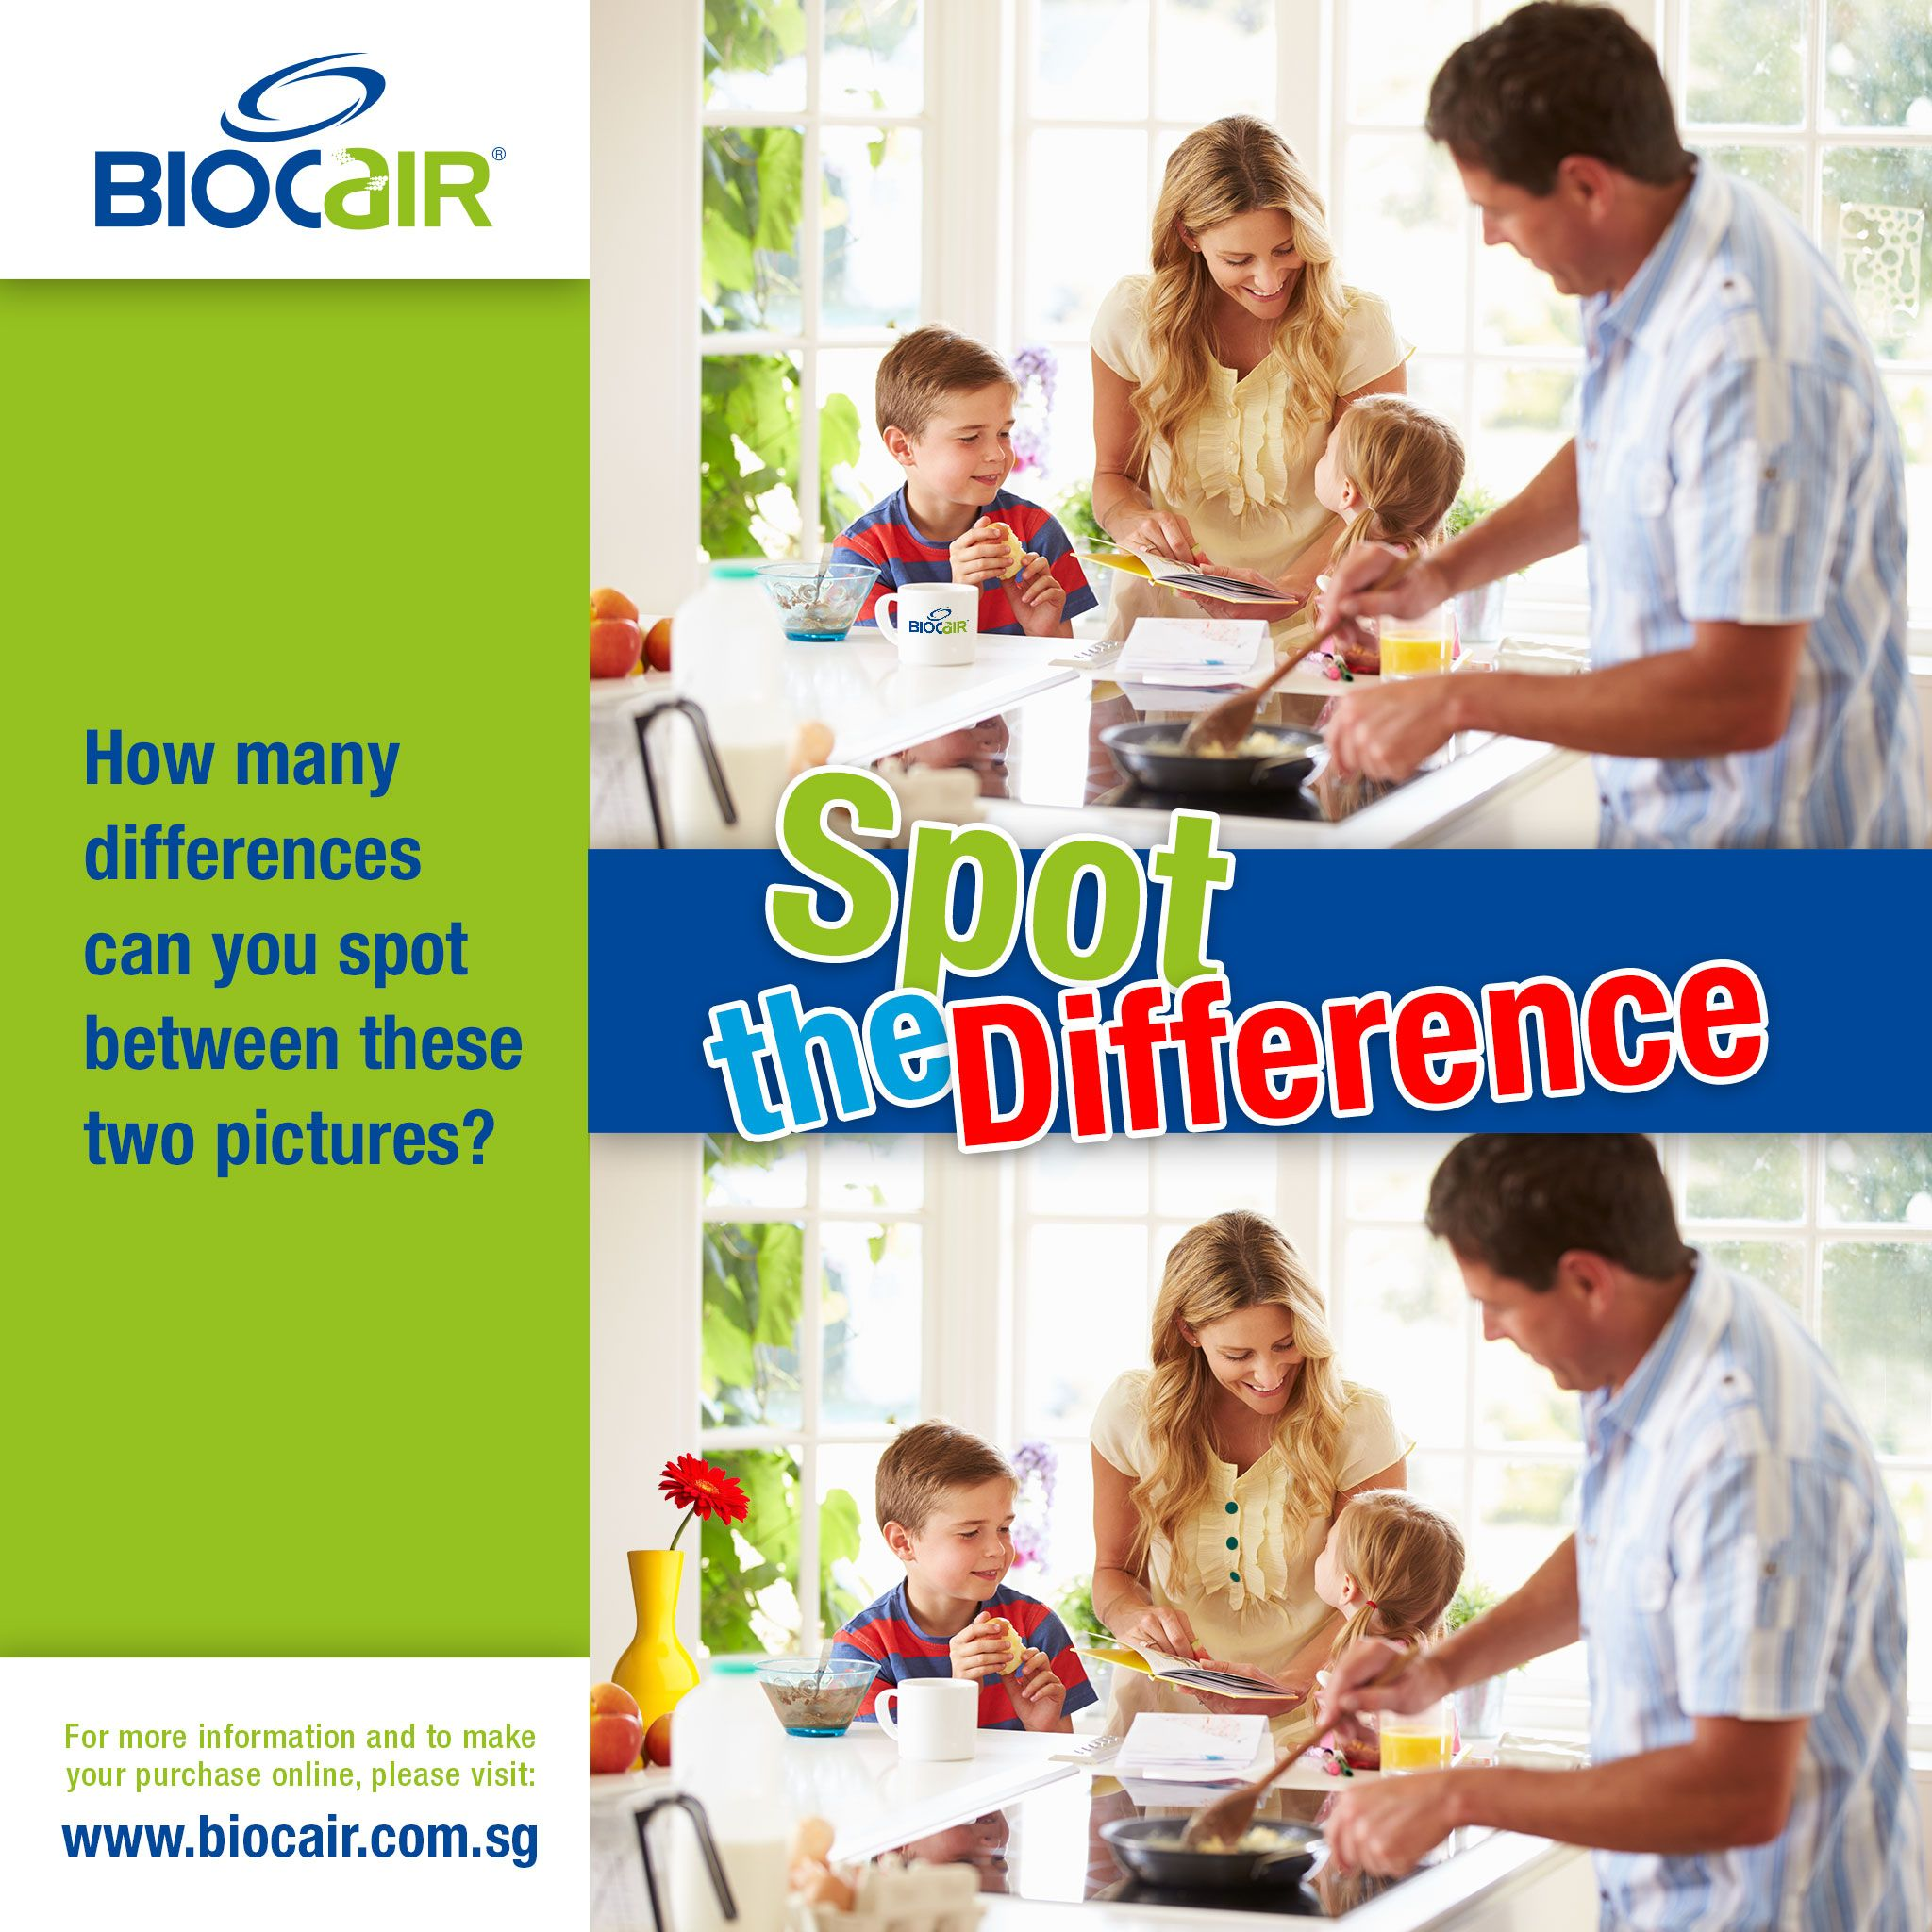 2 How Many Differences Can You Spot Between These Two